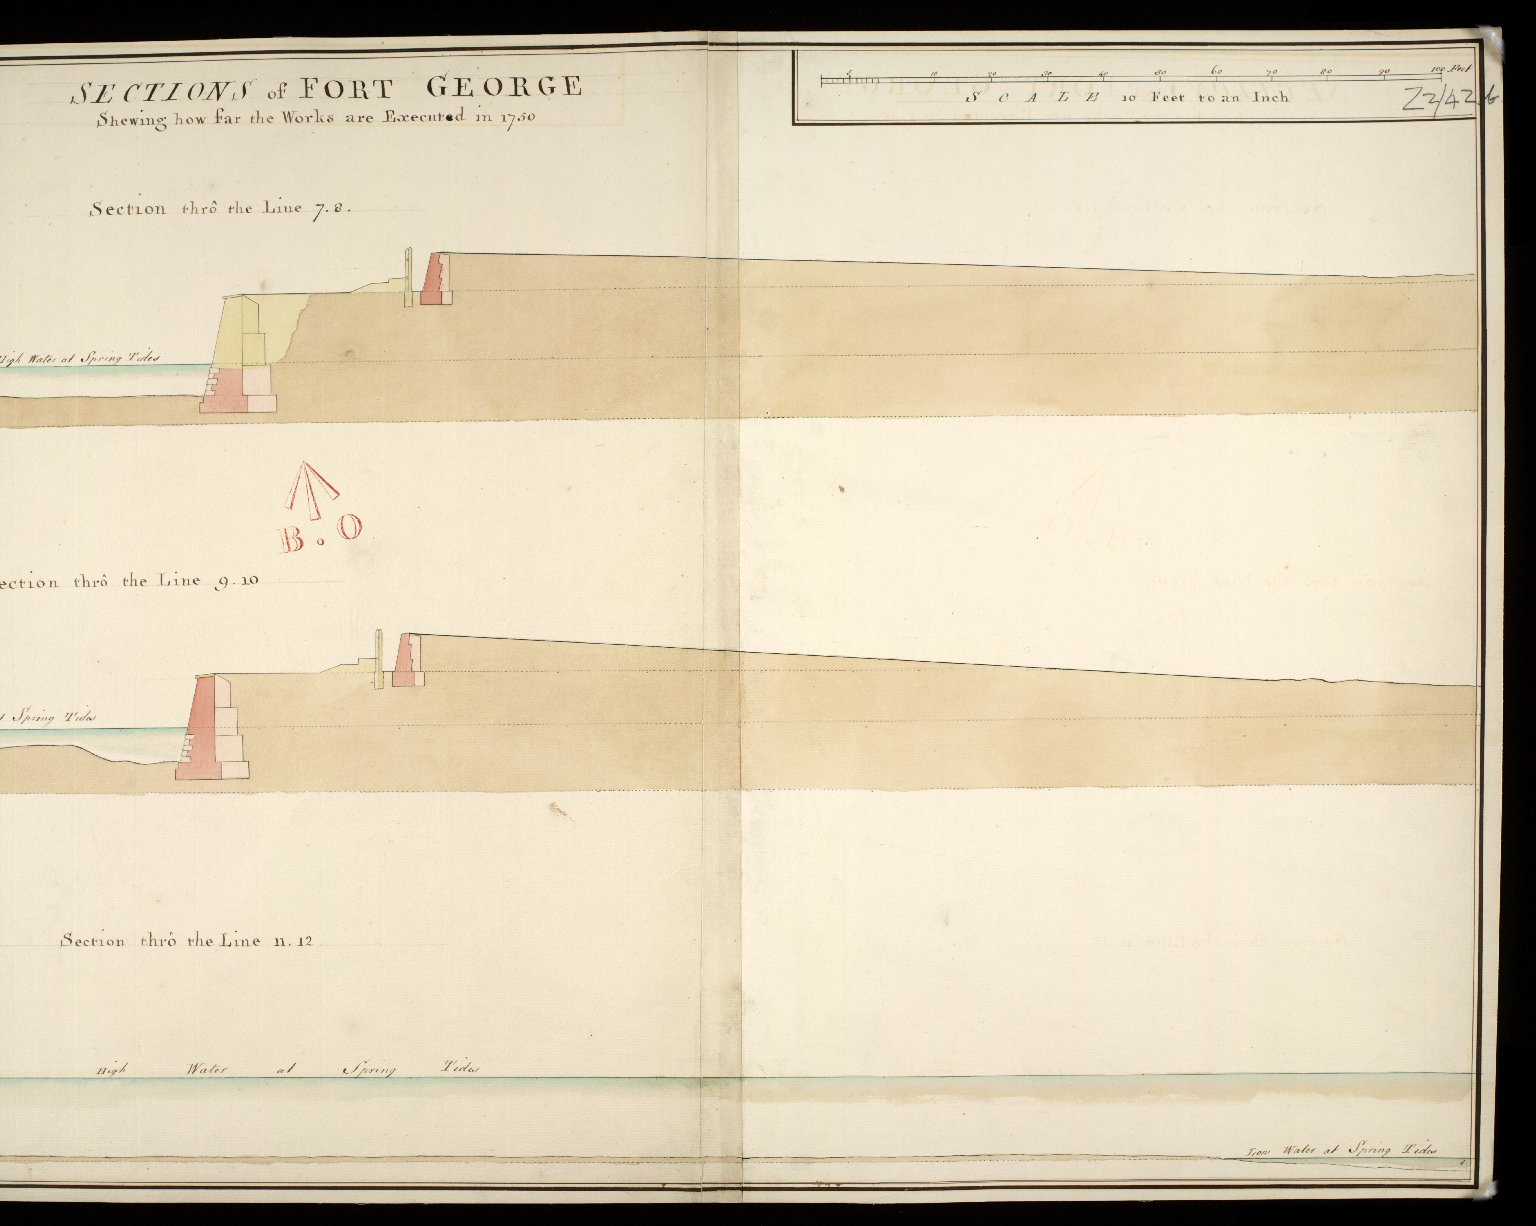 Sections of Fort George shewing how far the works are executed in 1750 : section thro' the line 7.8; section thro' the line 9.10; section thro' the line 11.12 [copy] [2 of 2]